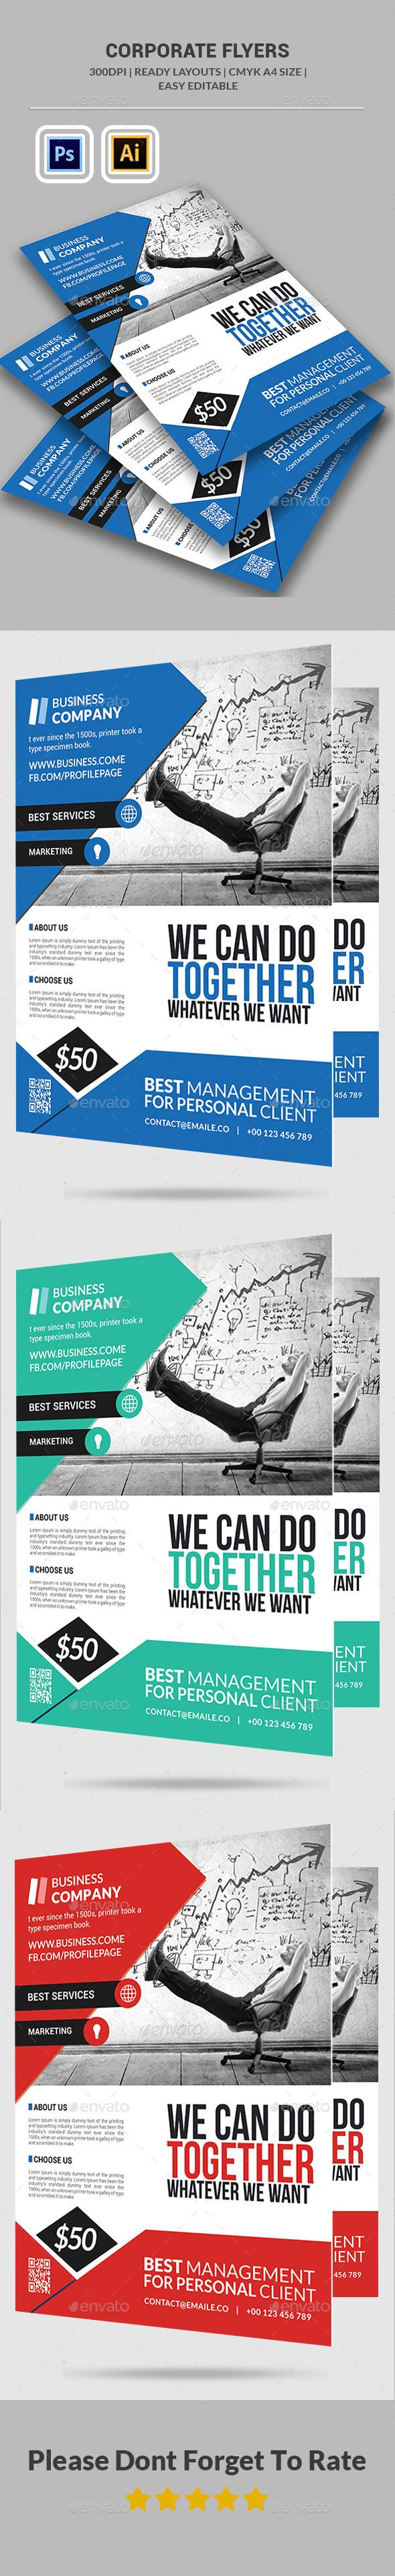 Corporate Business Flyer Template PSD, AI #design Download: http://graphicriver.net/item/corporate-business-flyer-template/12836099?ref=ksioks